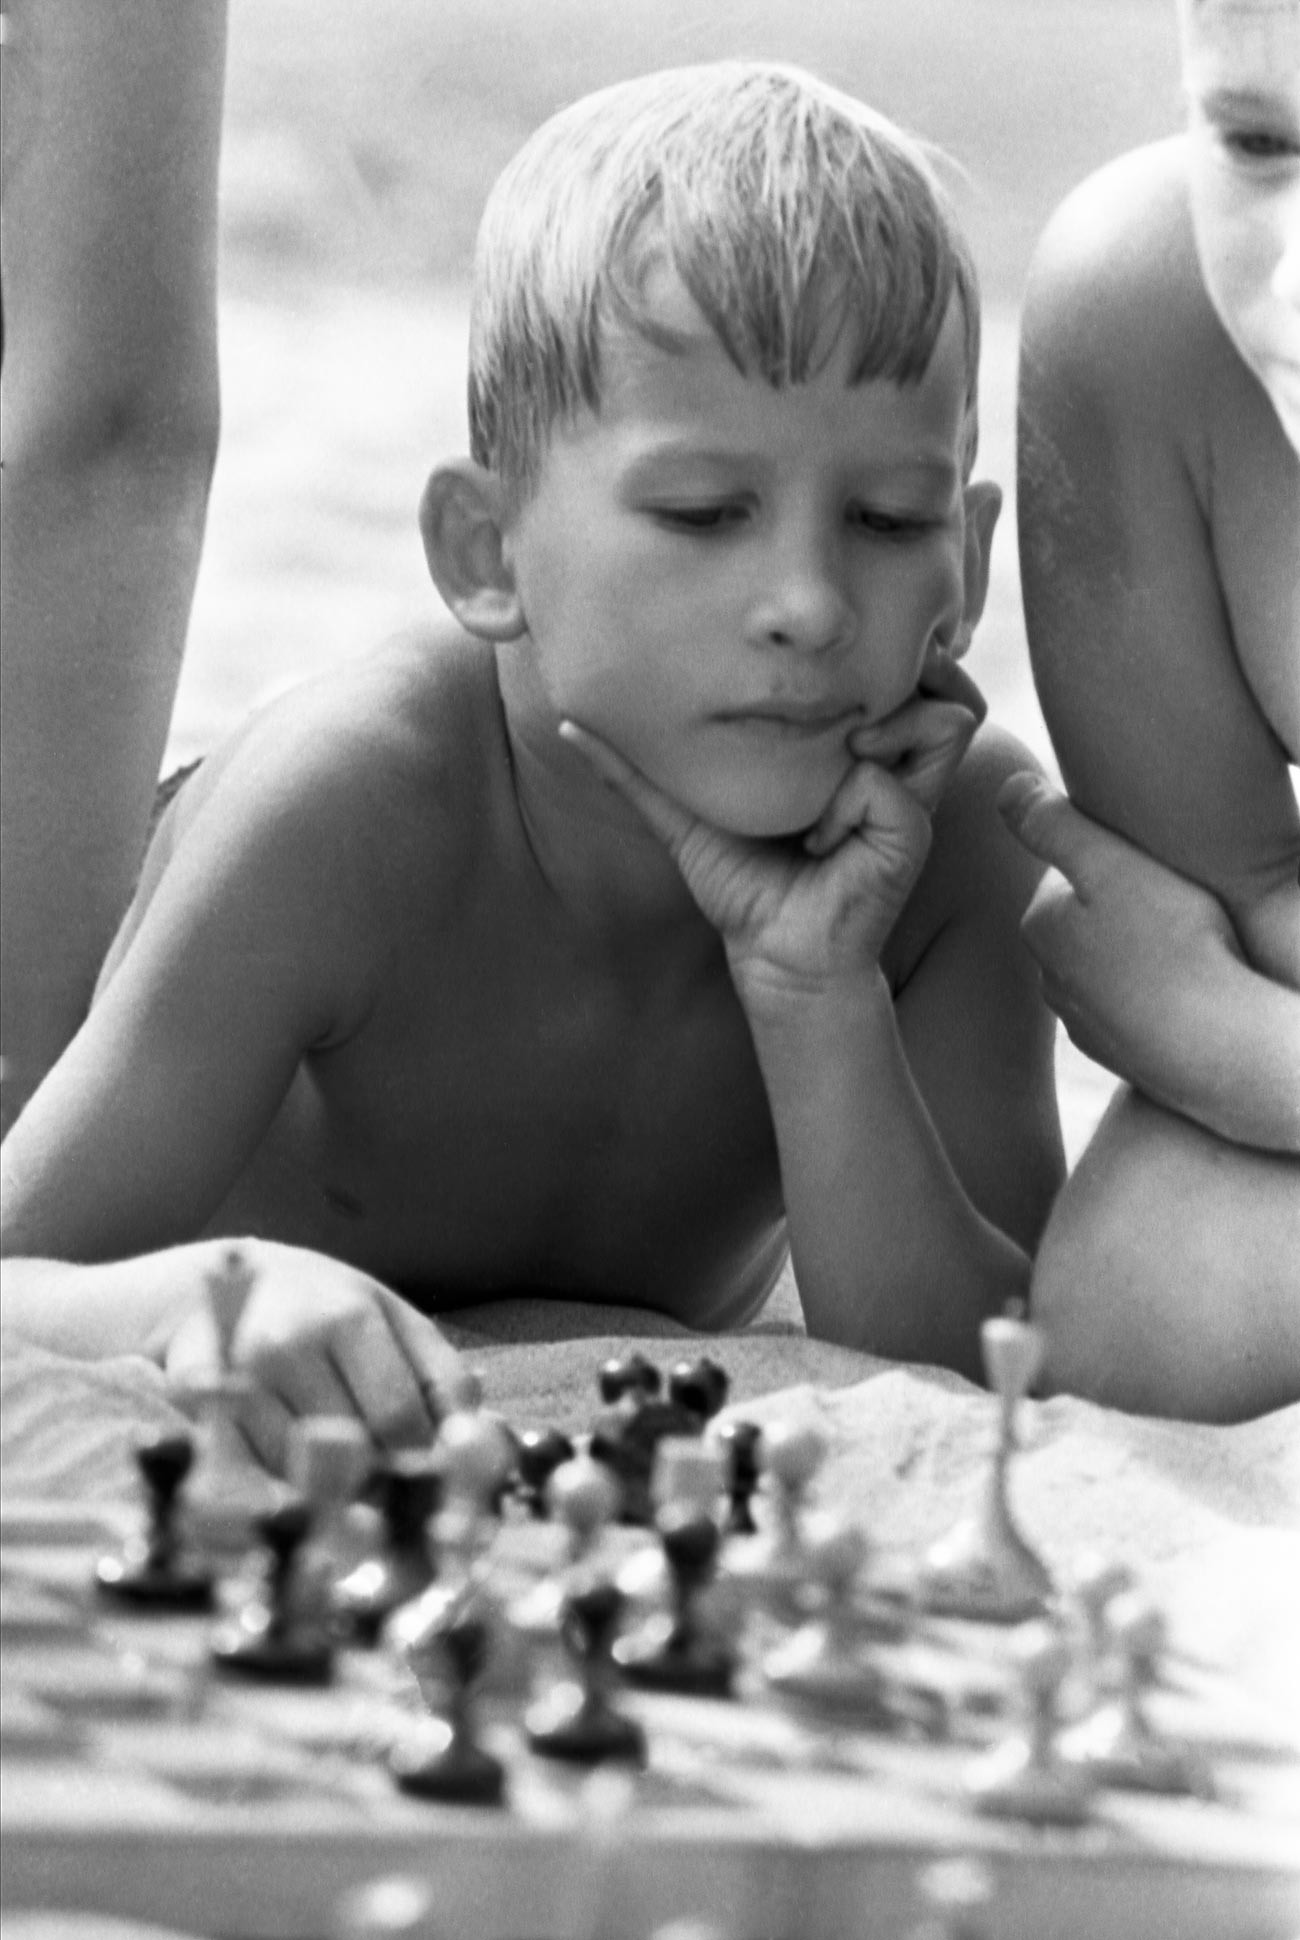 Chess was a very popular game among children and adults in the Soviet Union.